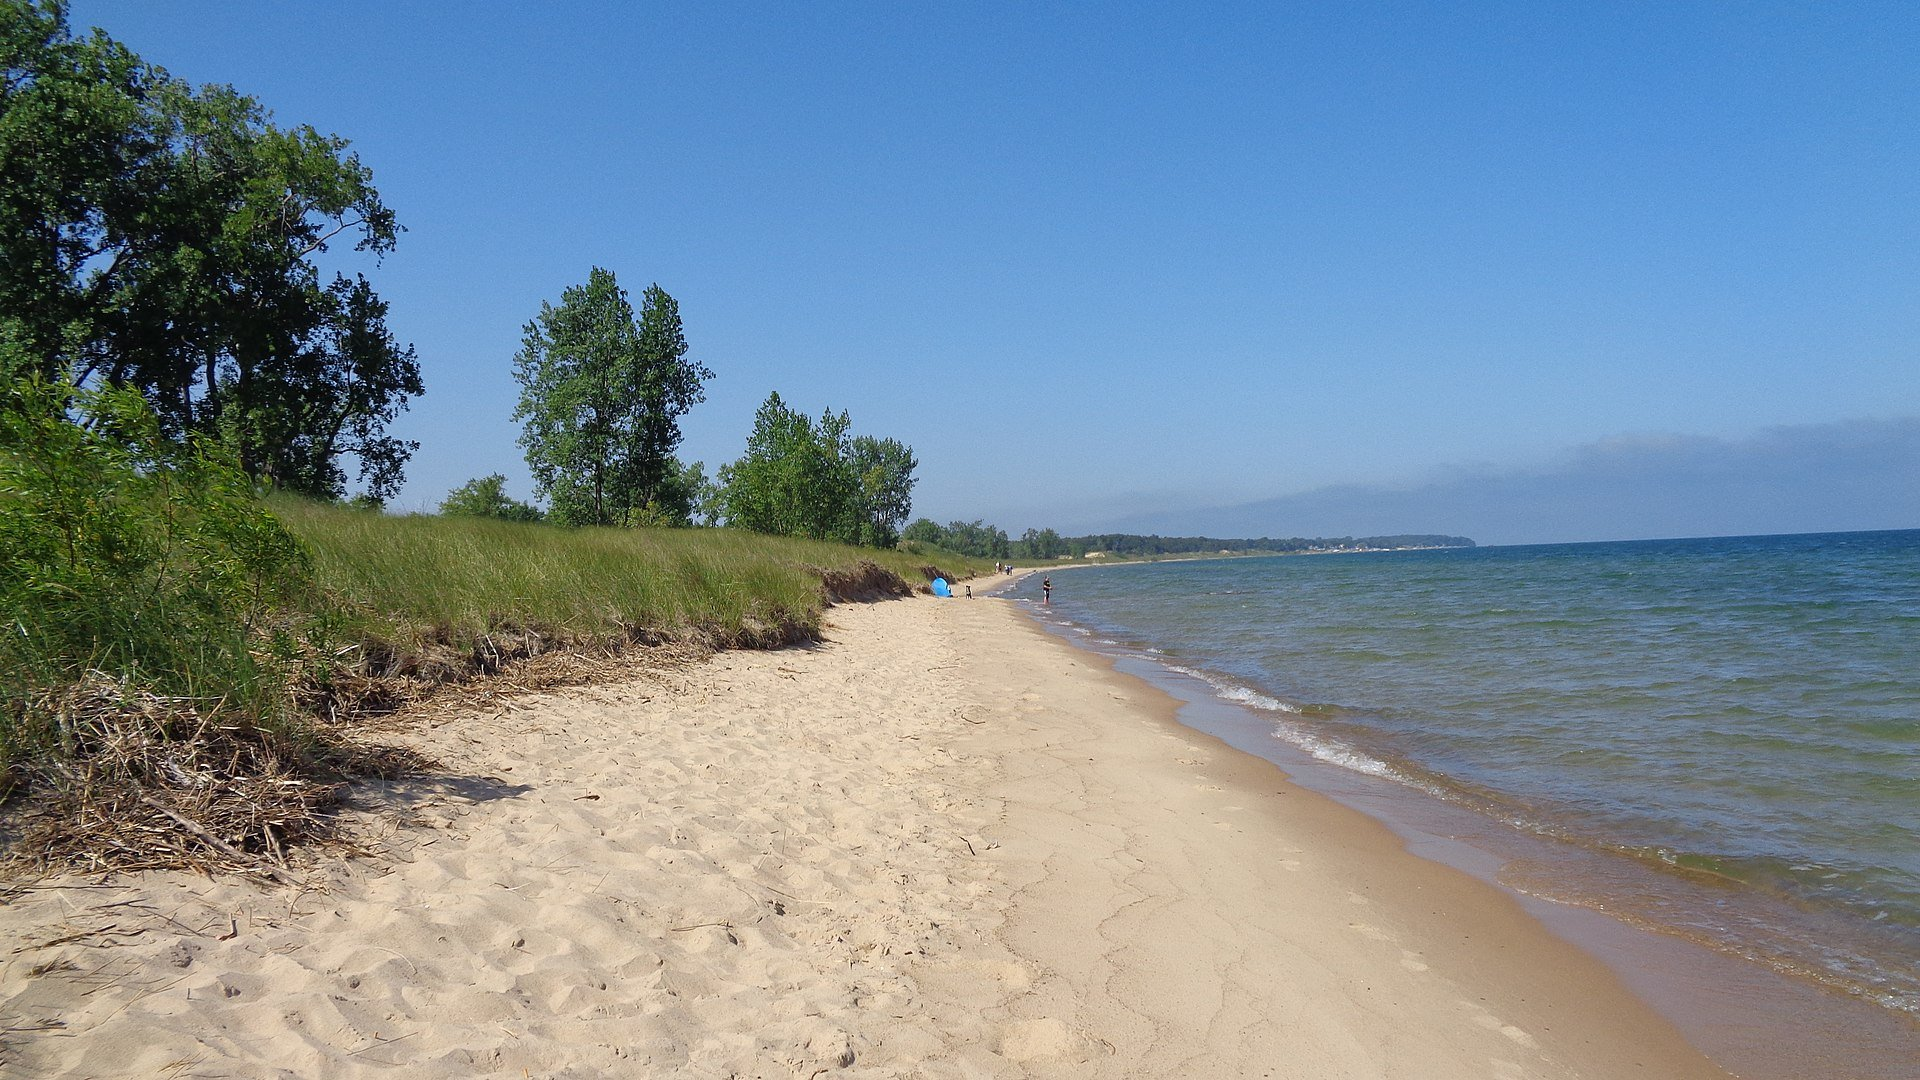 port crescent state park, michigan